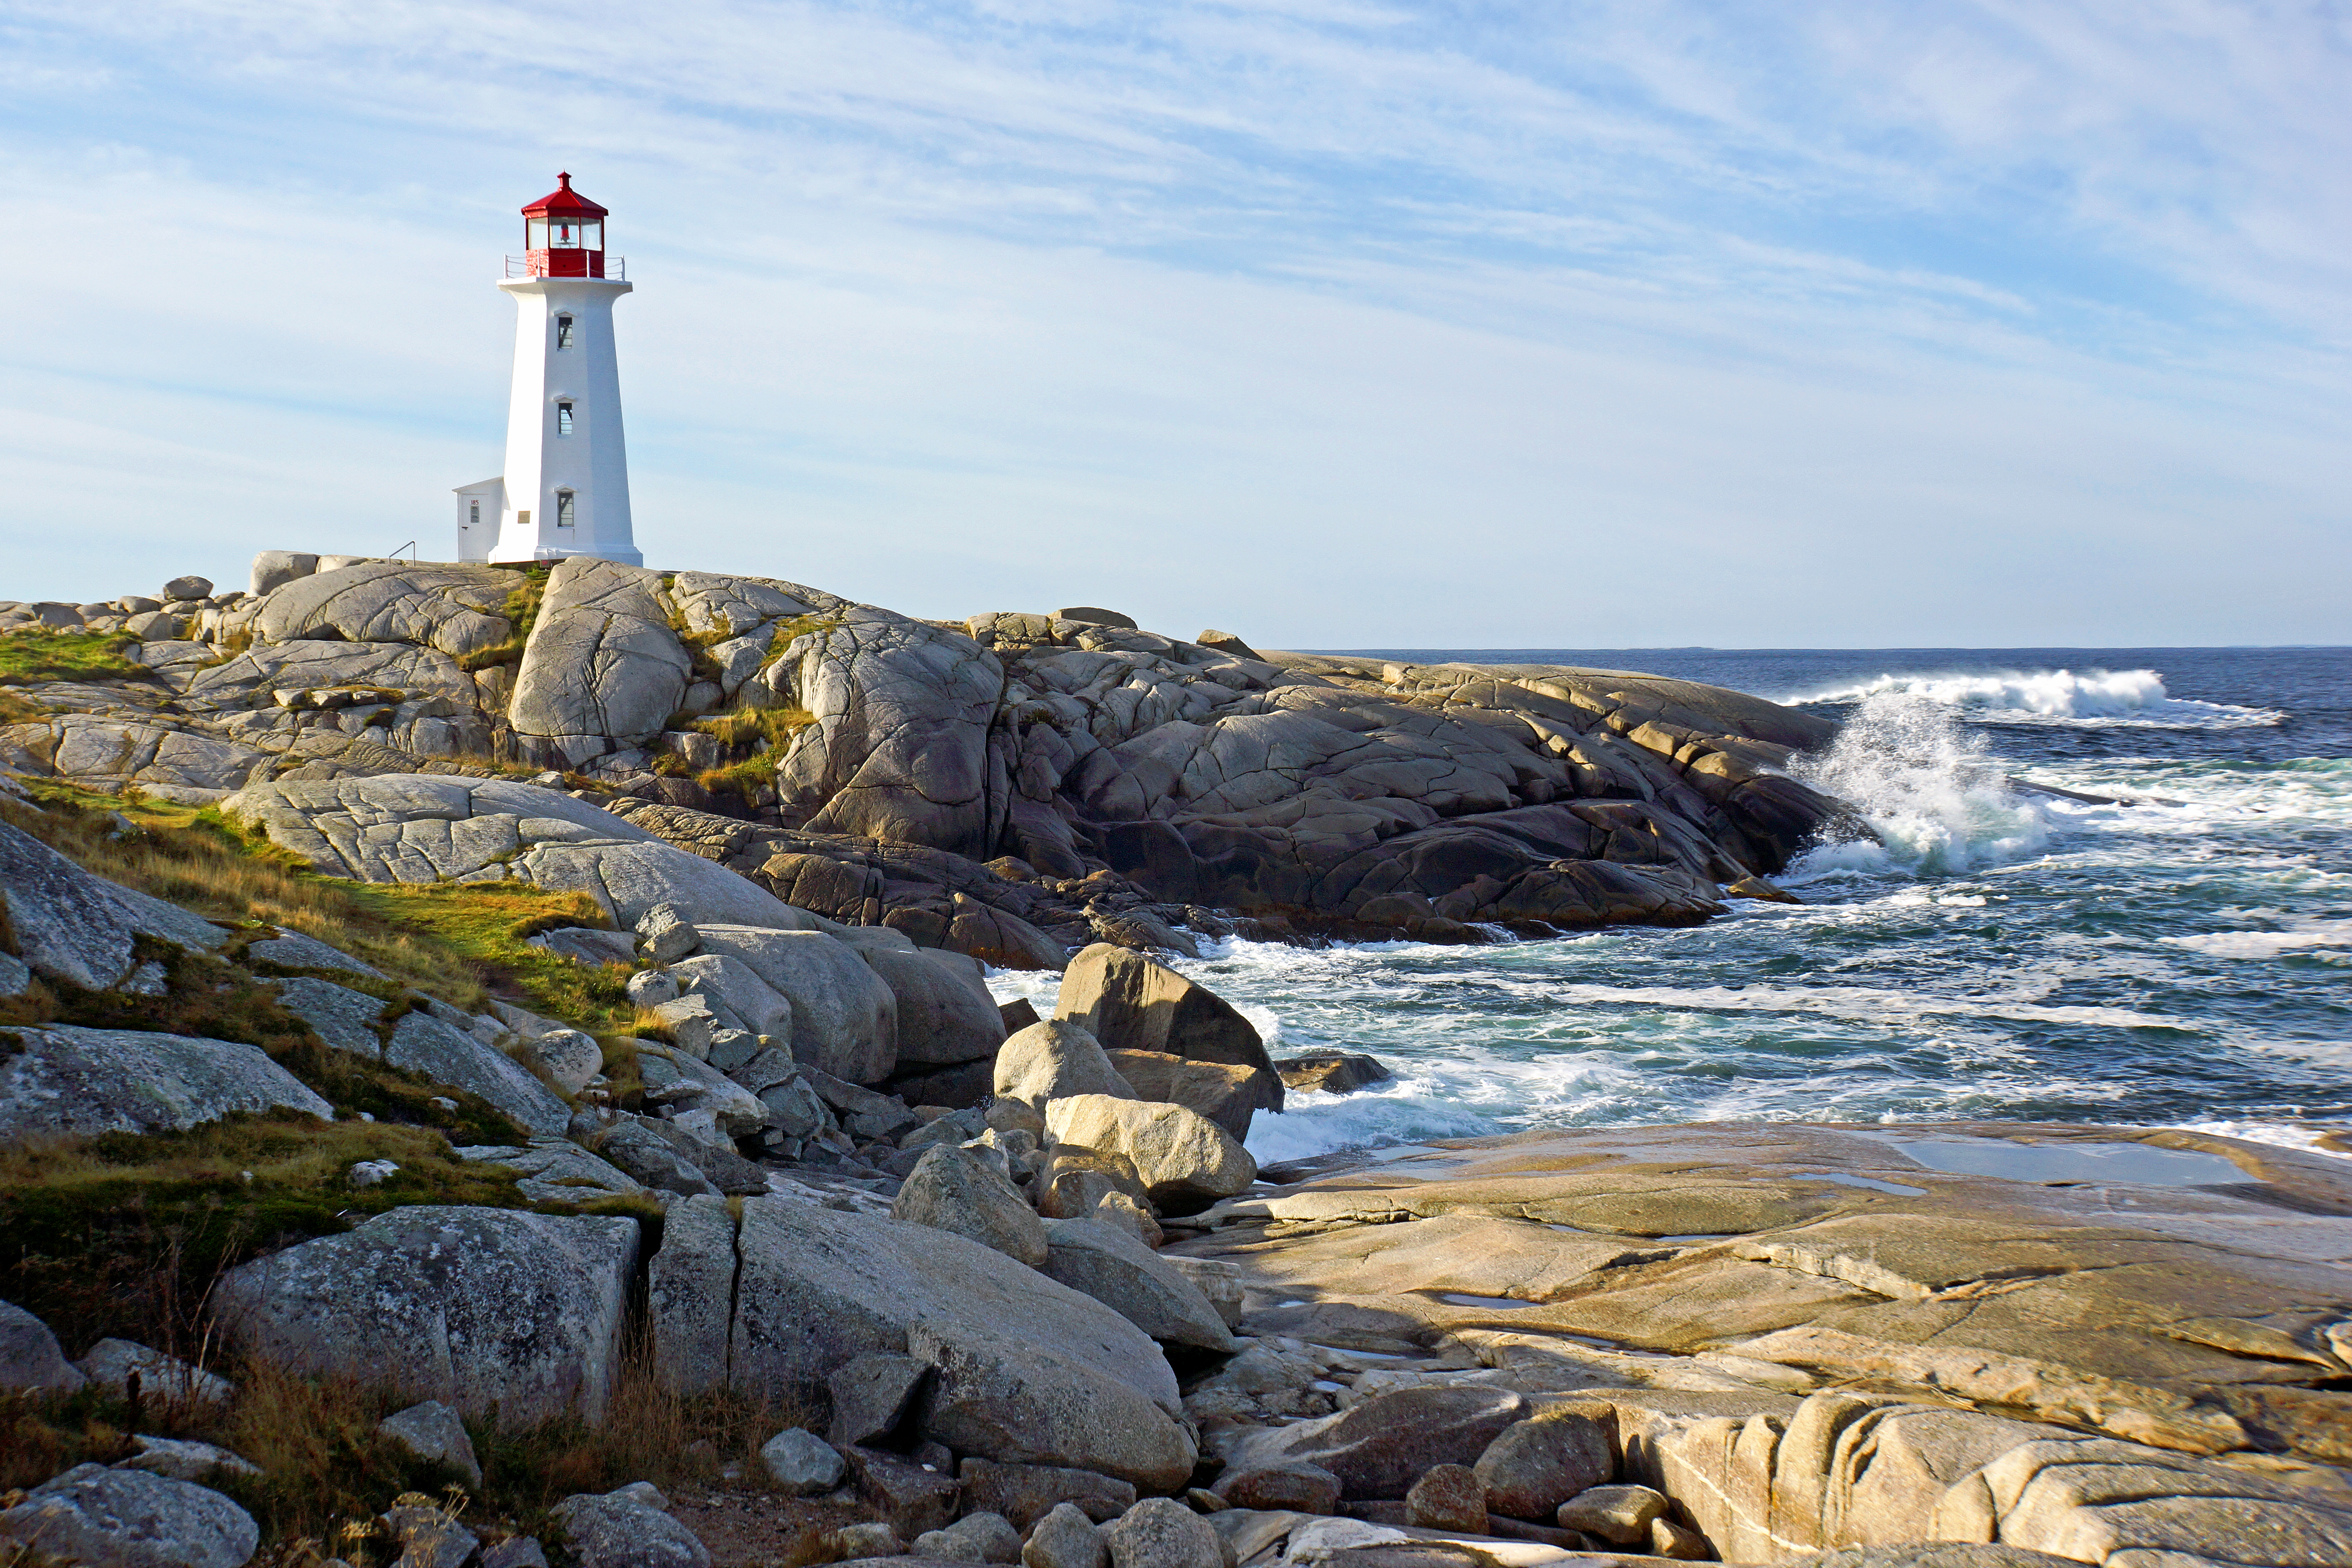 The lighthouse at Peggy's Cove is the most photographed lighthouse in the world